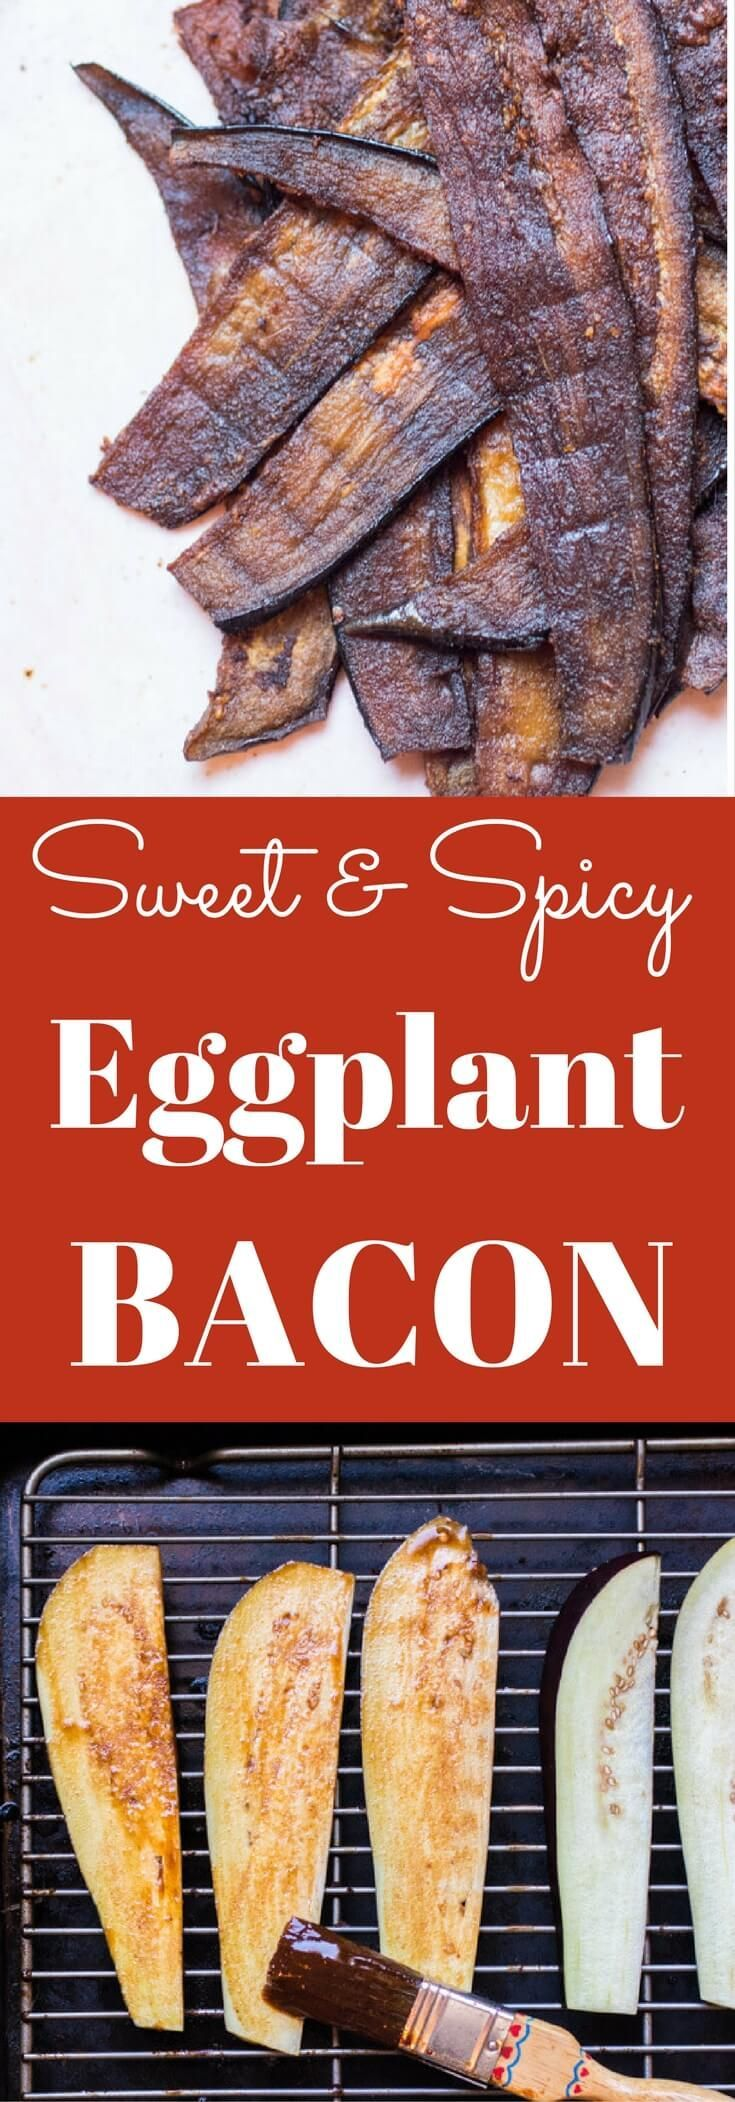 Sweet and salty crisp vegan bacon made with eggplant. A plant-based alternative to bacon, no liquid smoke needed   abraskitchen.com #Monksweet #SweetandEasy #Steviva #ad